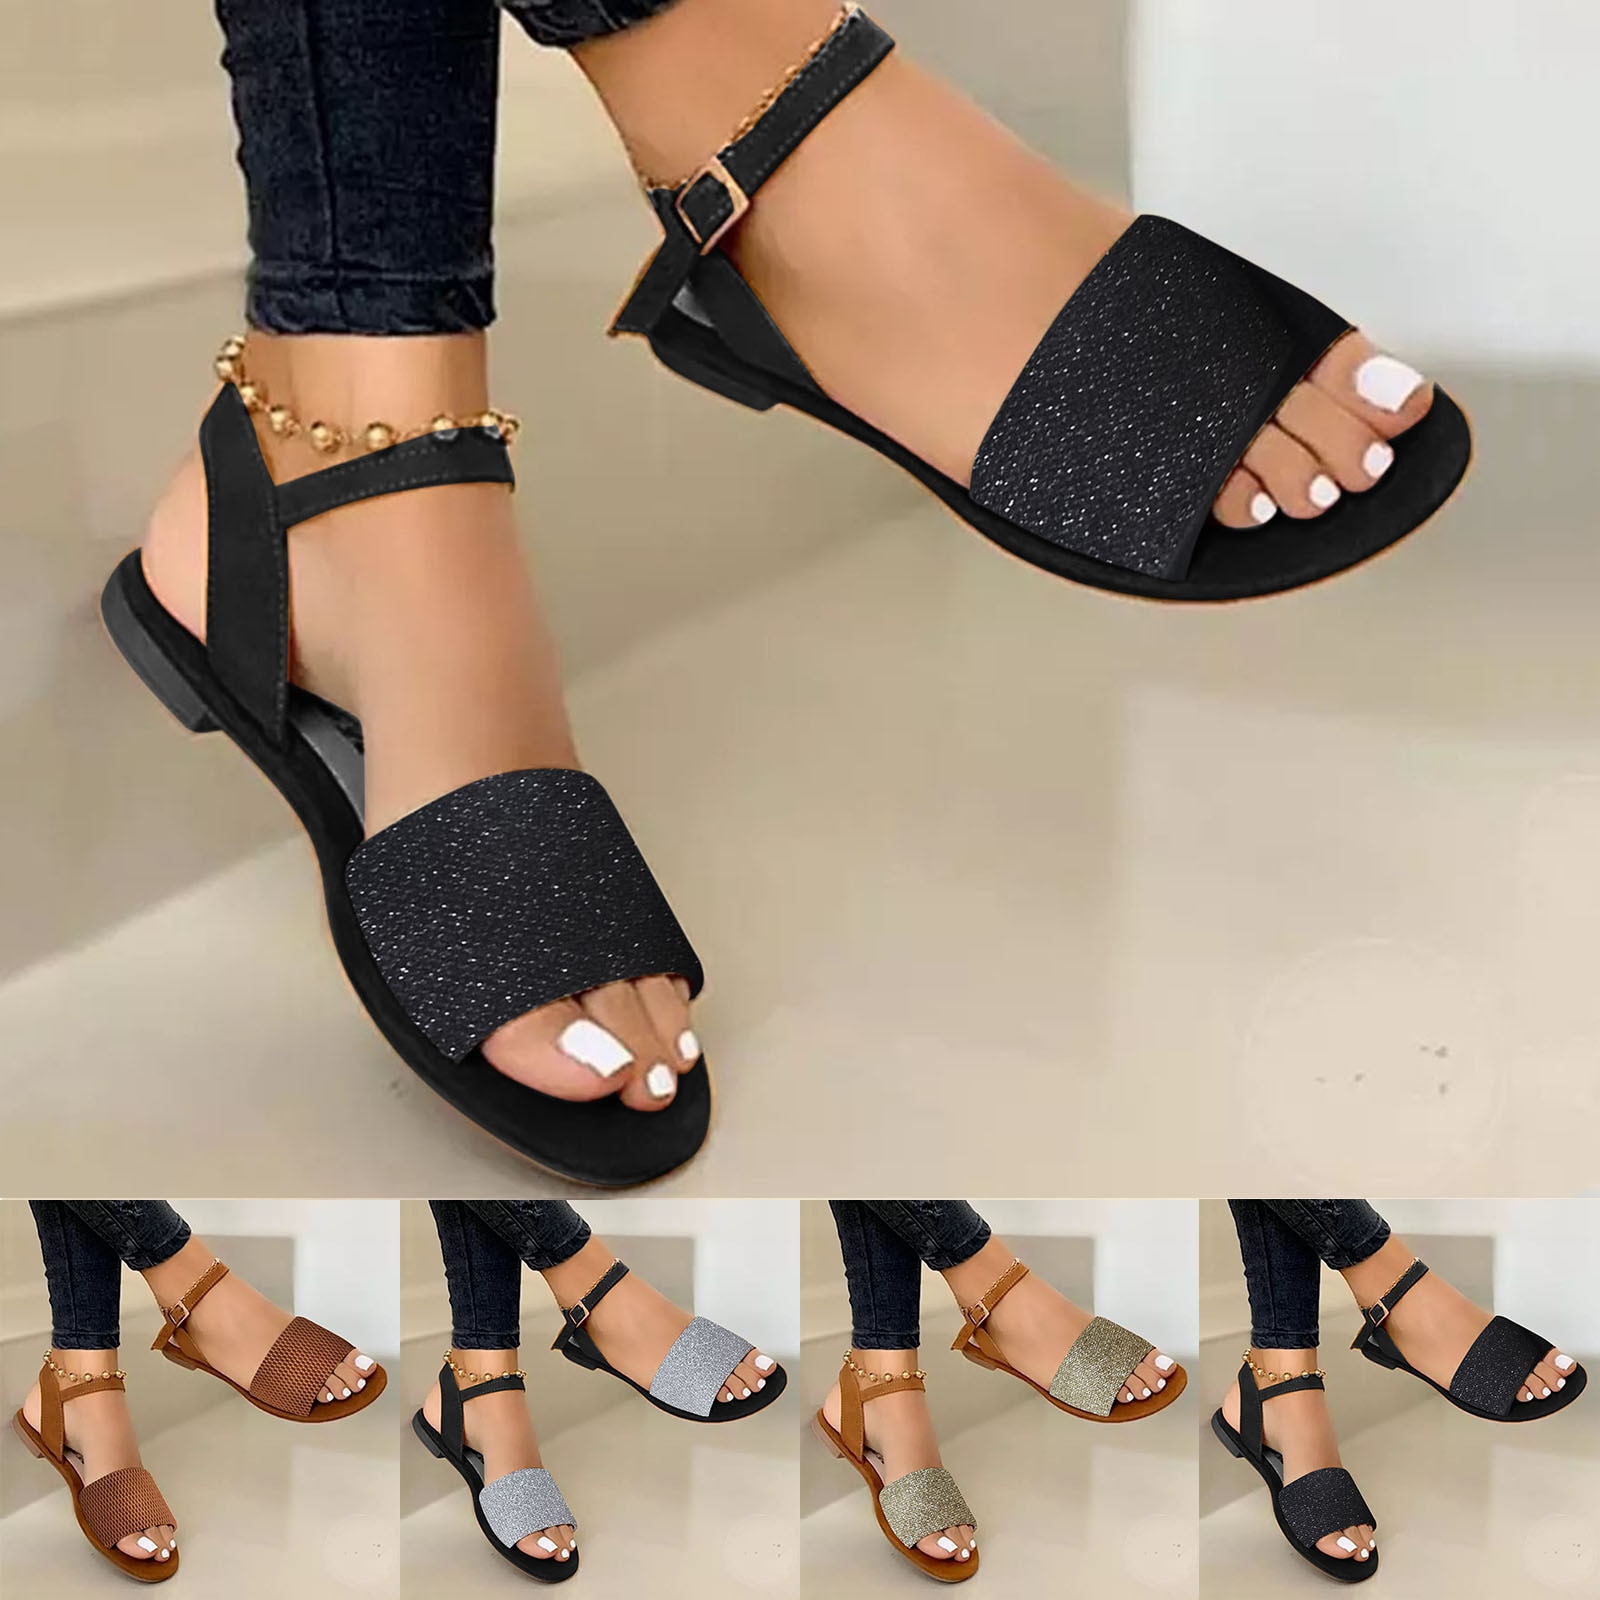 Women's Sandals Gladiator Open Toe Summer Large Size Pure Color Buckle Flat Casual Sandals Female Fl